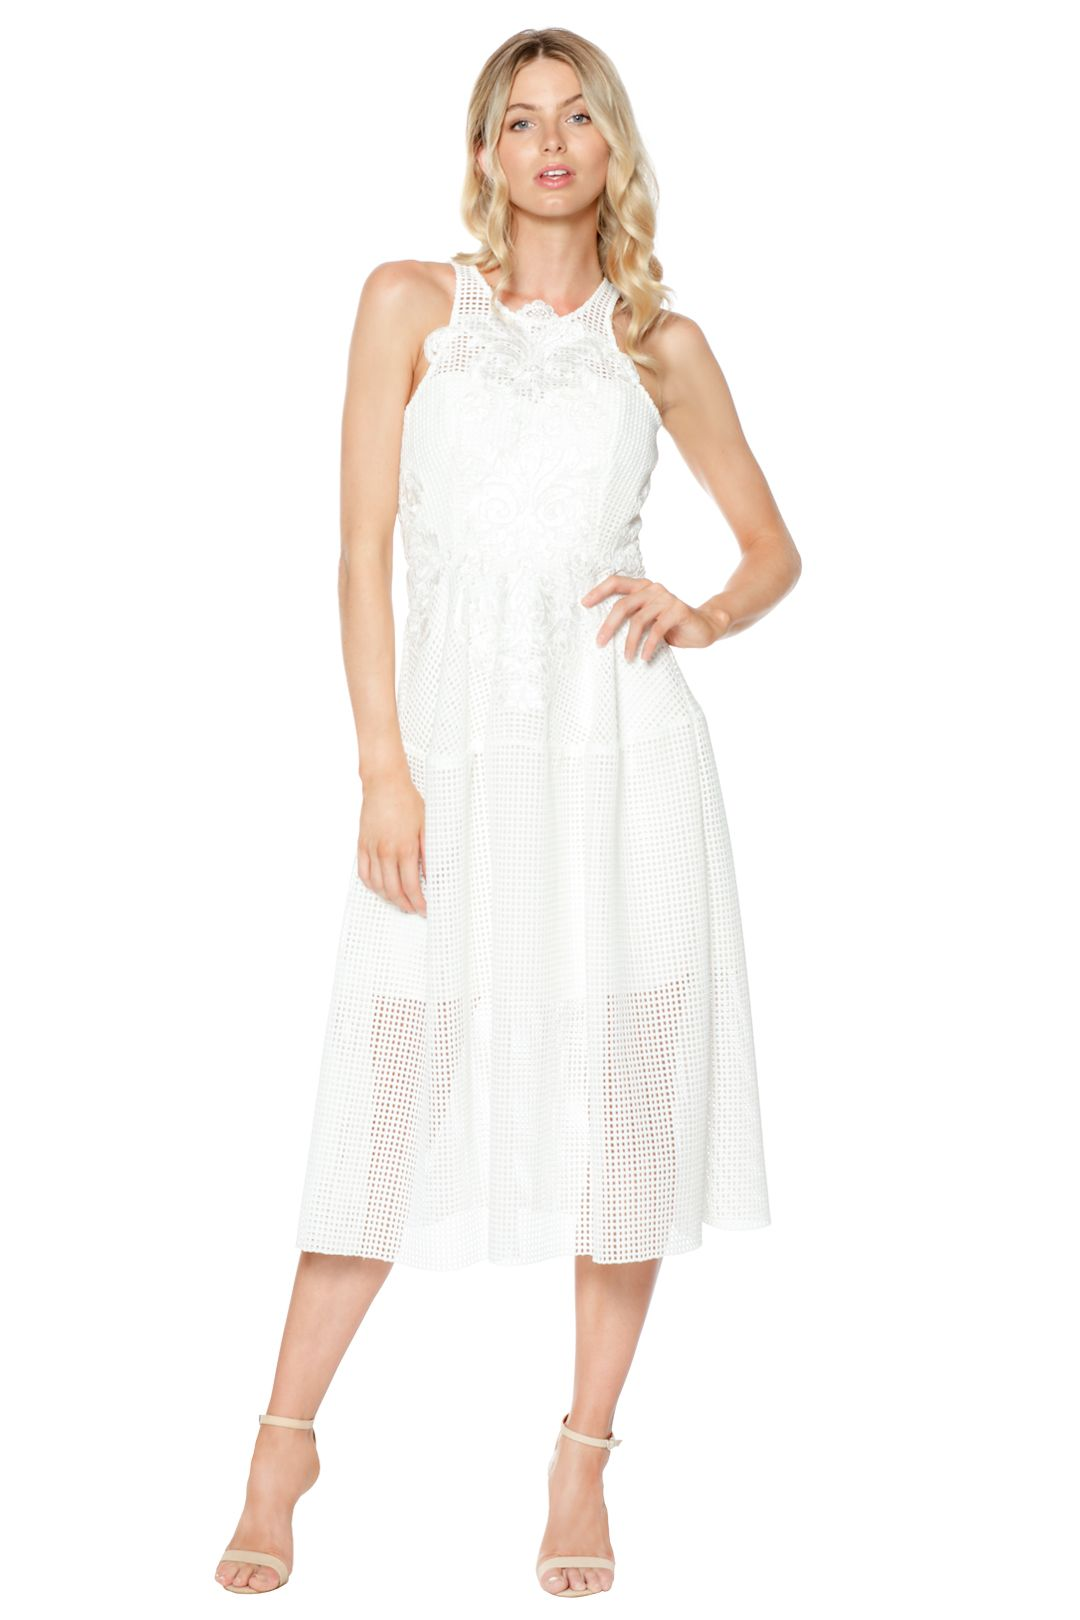 Thurley - Bianca Embroidered Dress - White - Front